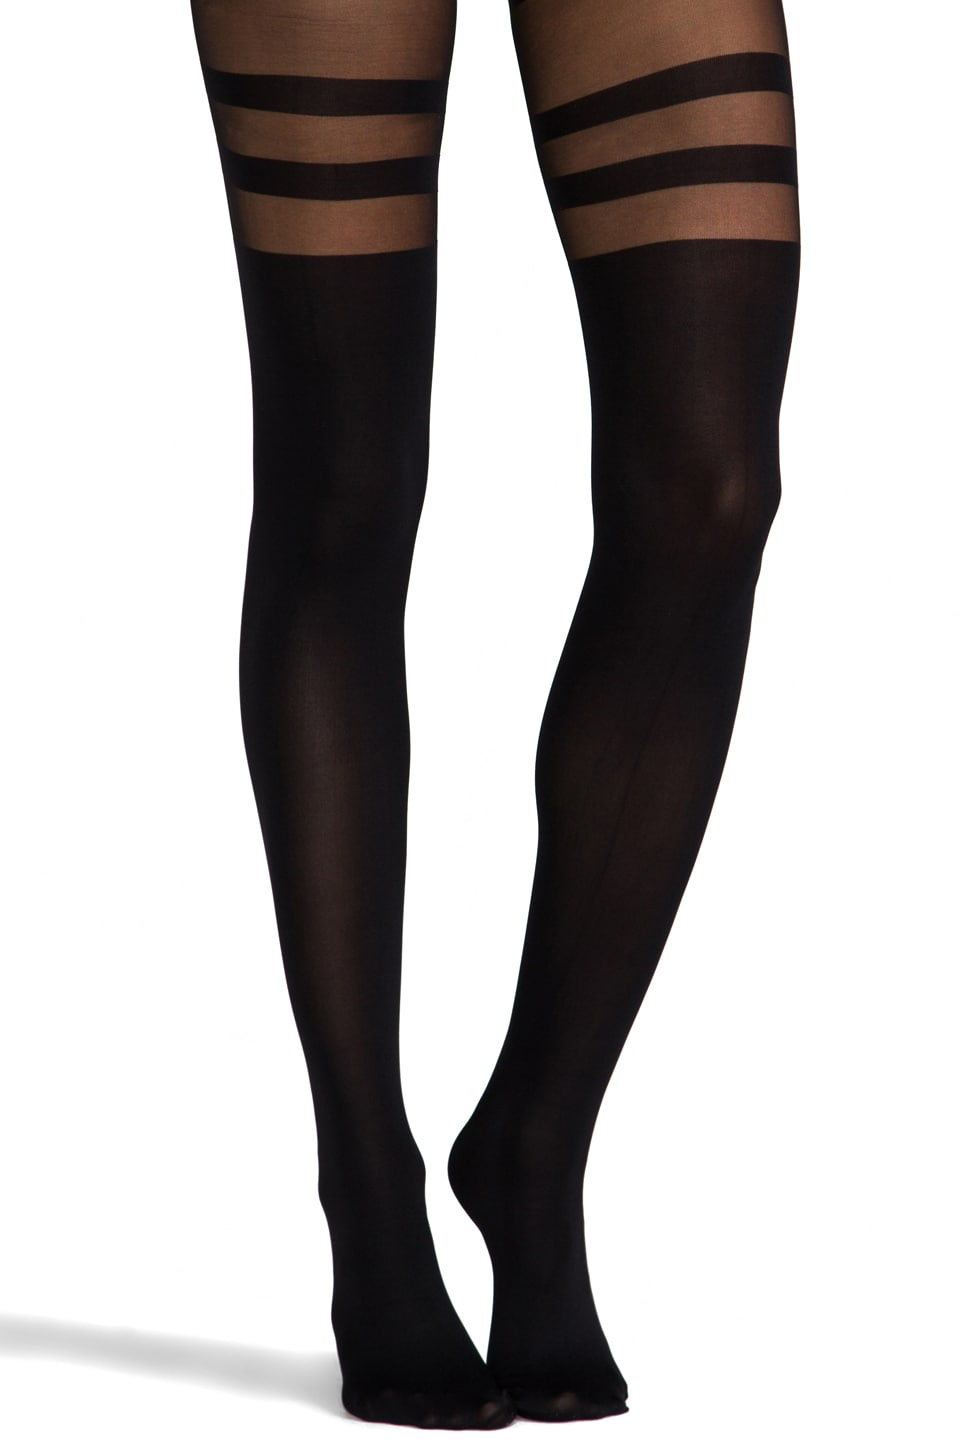 Commando Fashion Tights in Halo Black